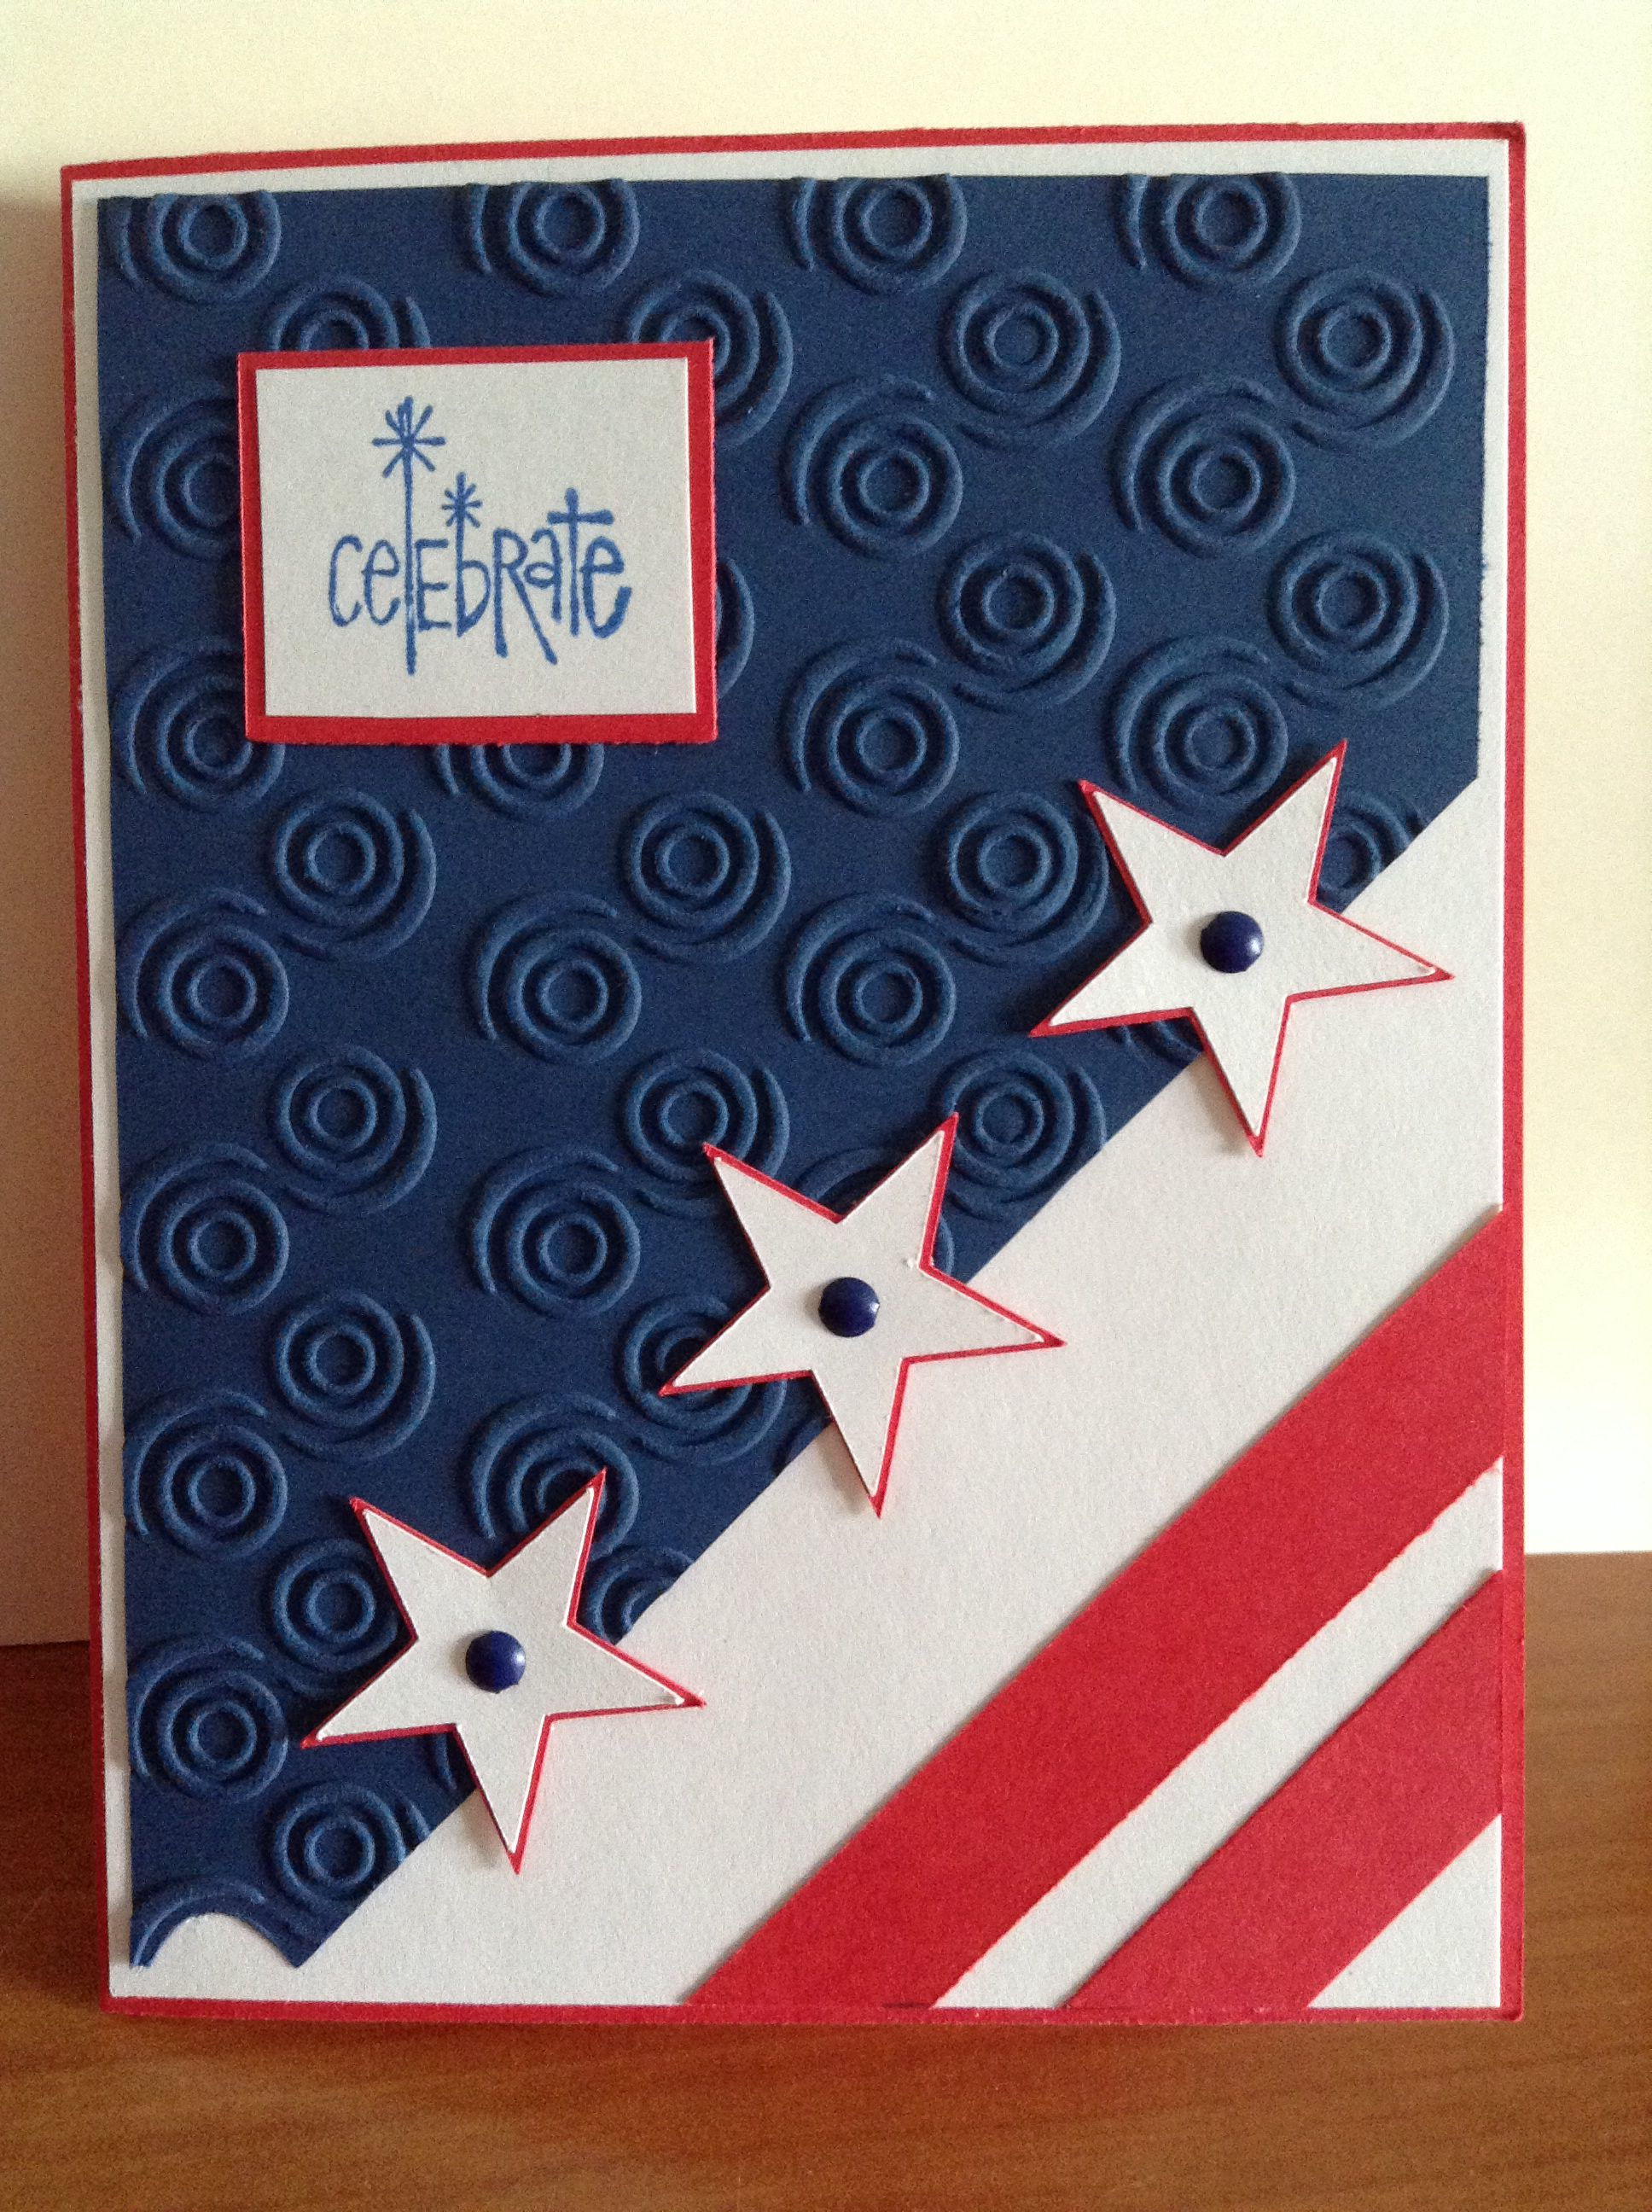 4th Of July Card With Images Greeting Cards Handmade Cards